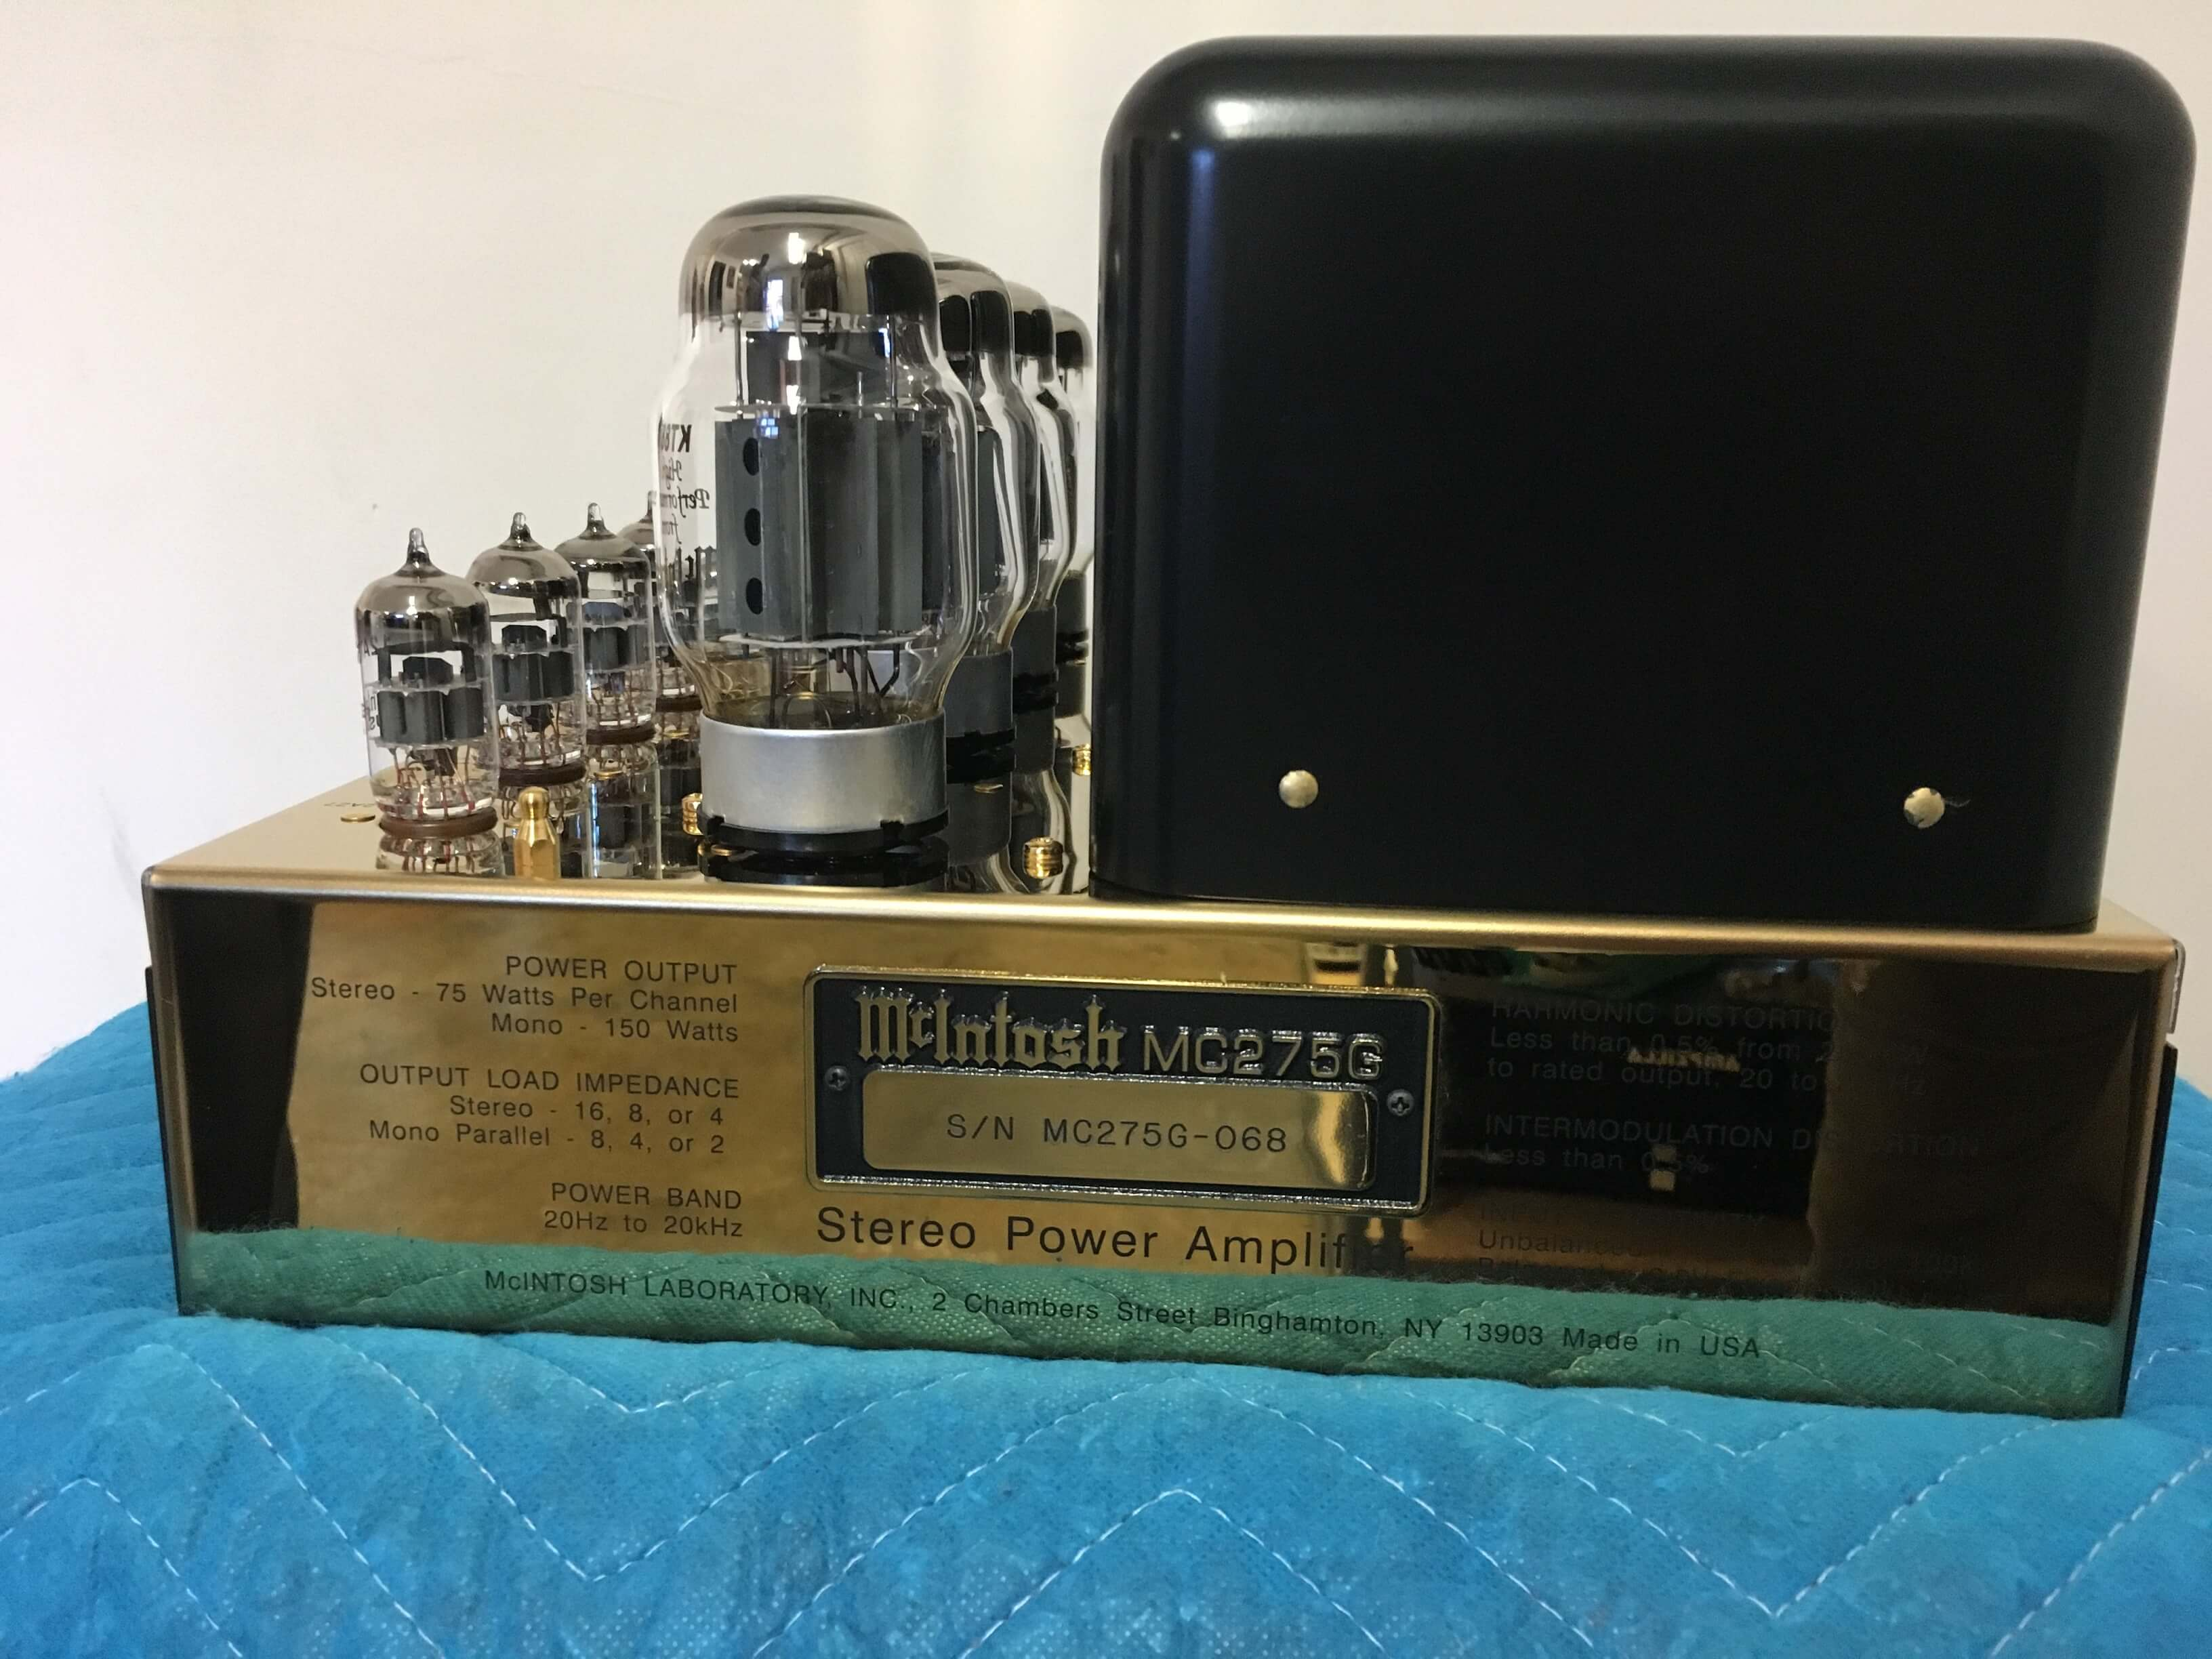 McIntosh Gordon J. Gow 275 amplifier & tube set